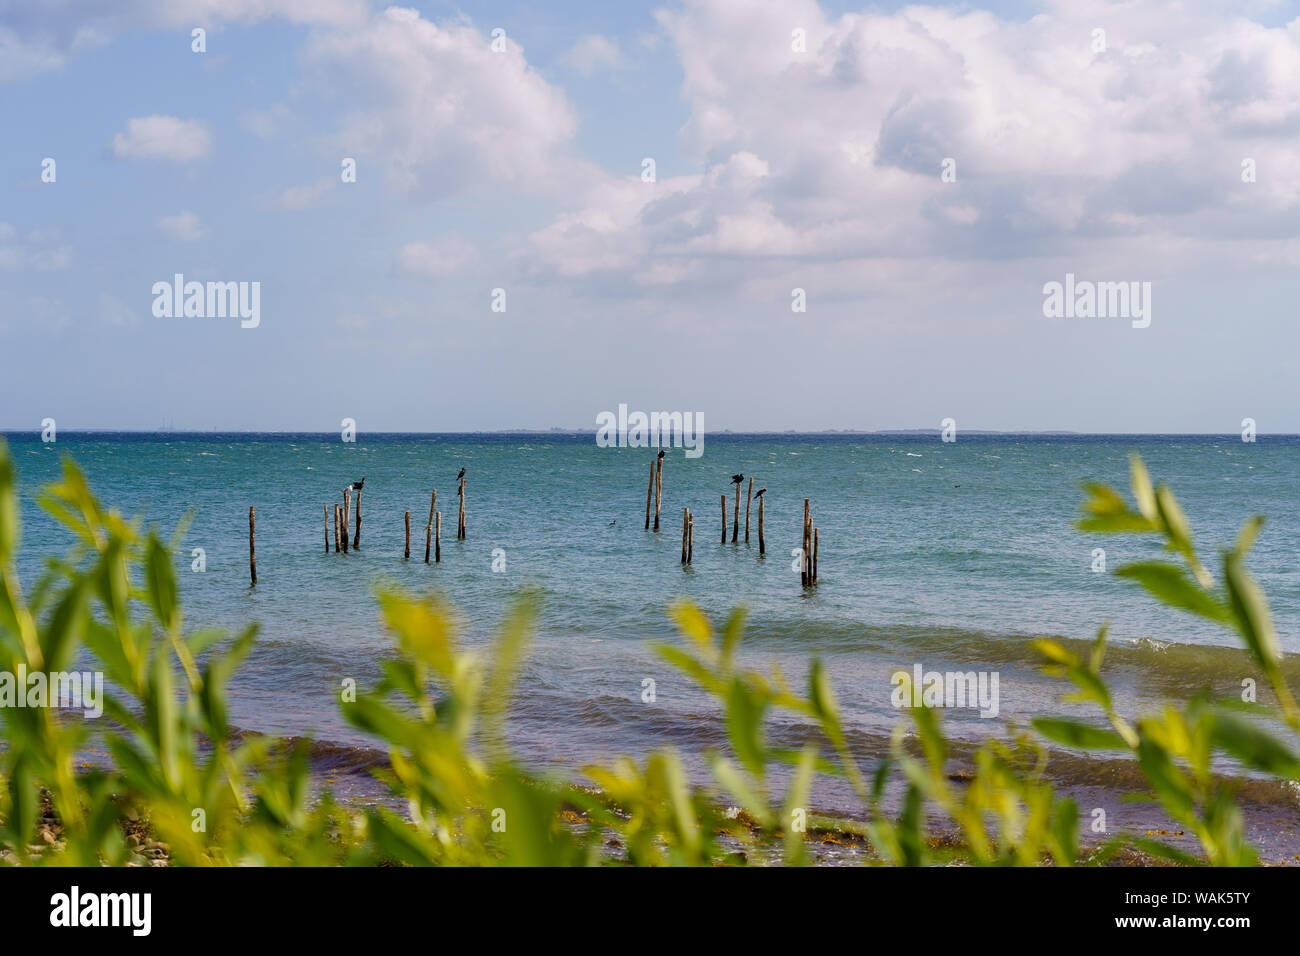 View over wooden poles in the water on the Baltic Sea Stock Photo